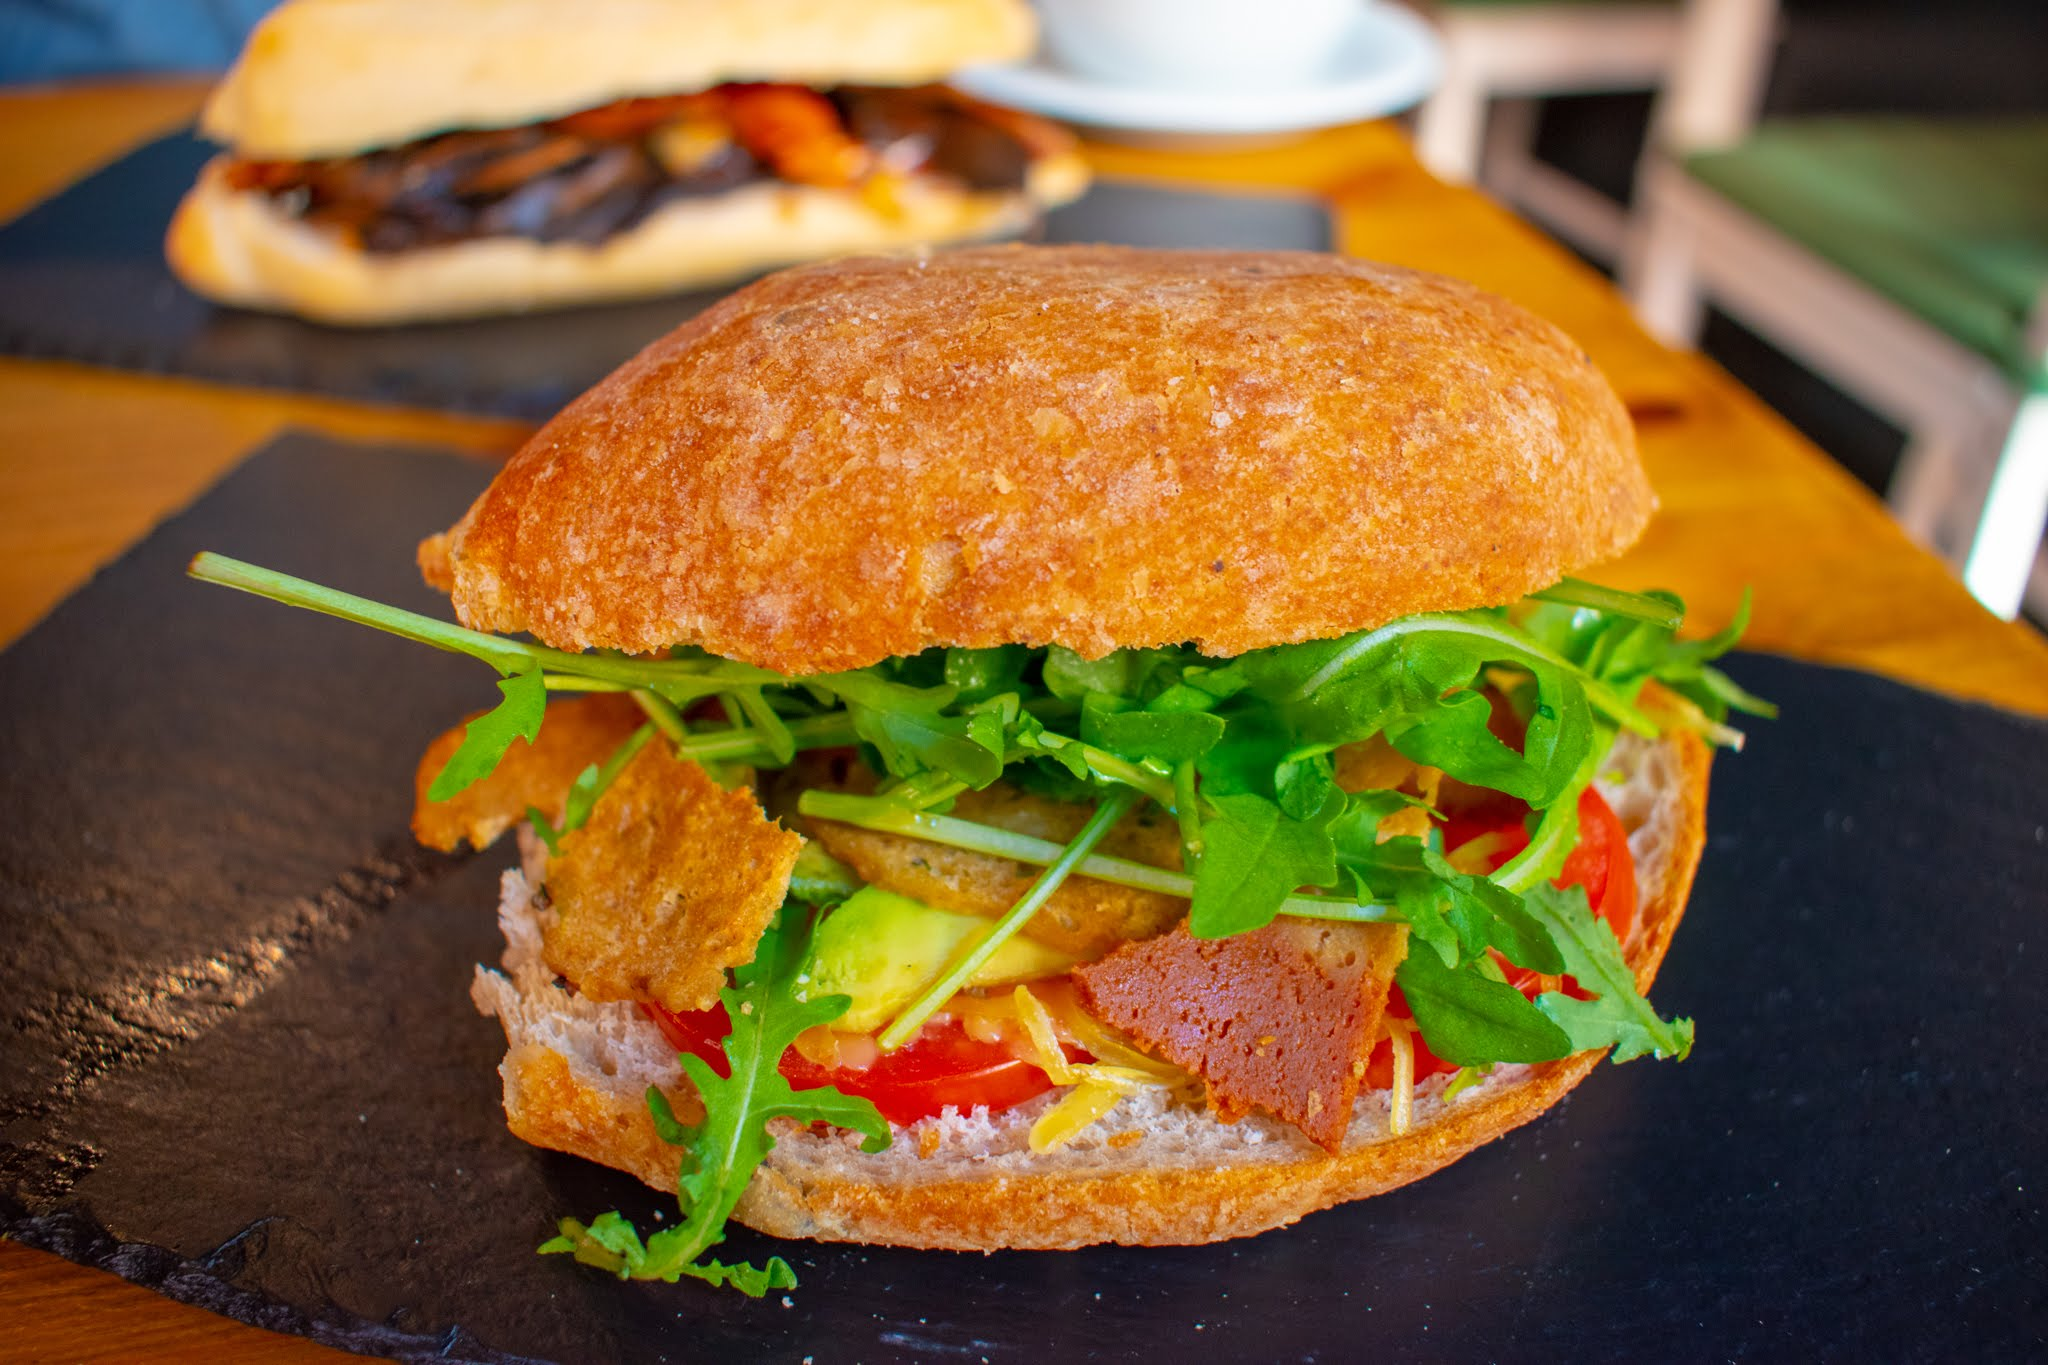 uprooted-traveler-dublin-ireland-vegan-blt-cafe-apertivo.jpg